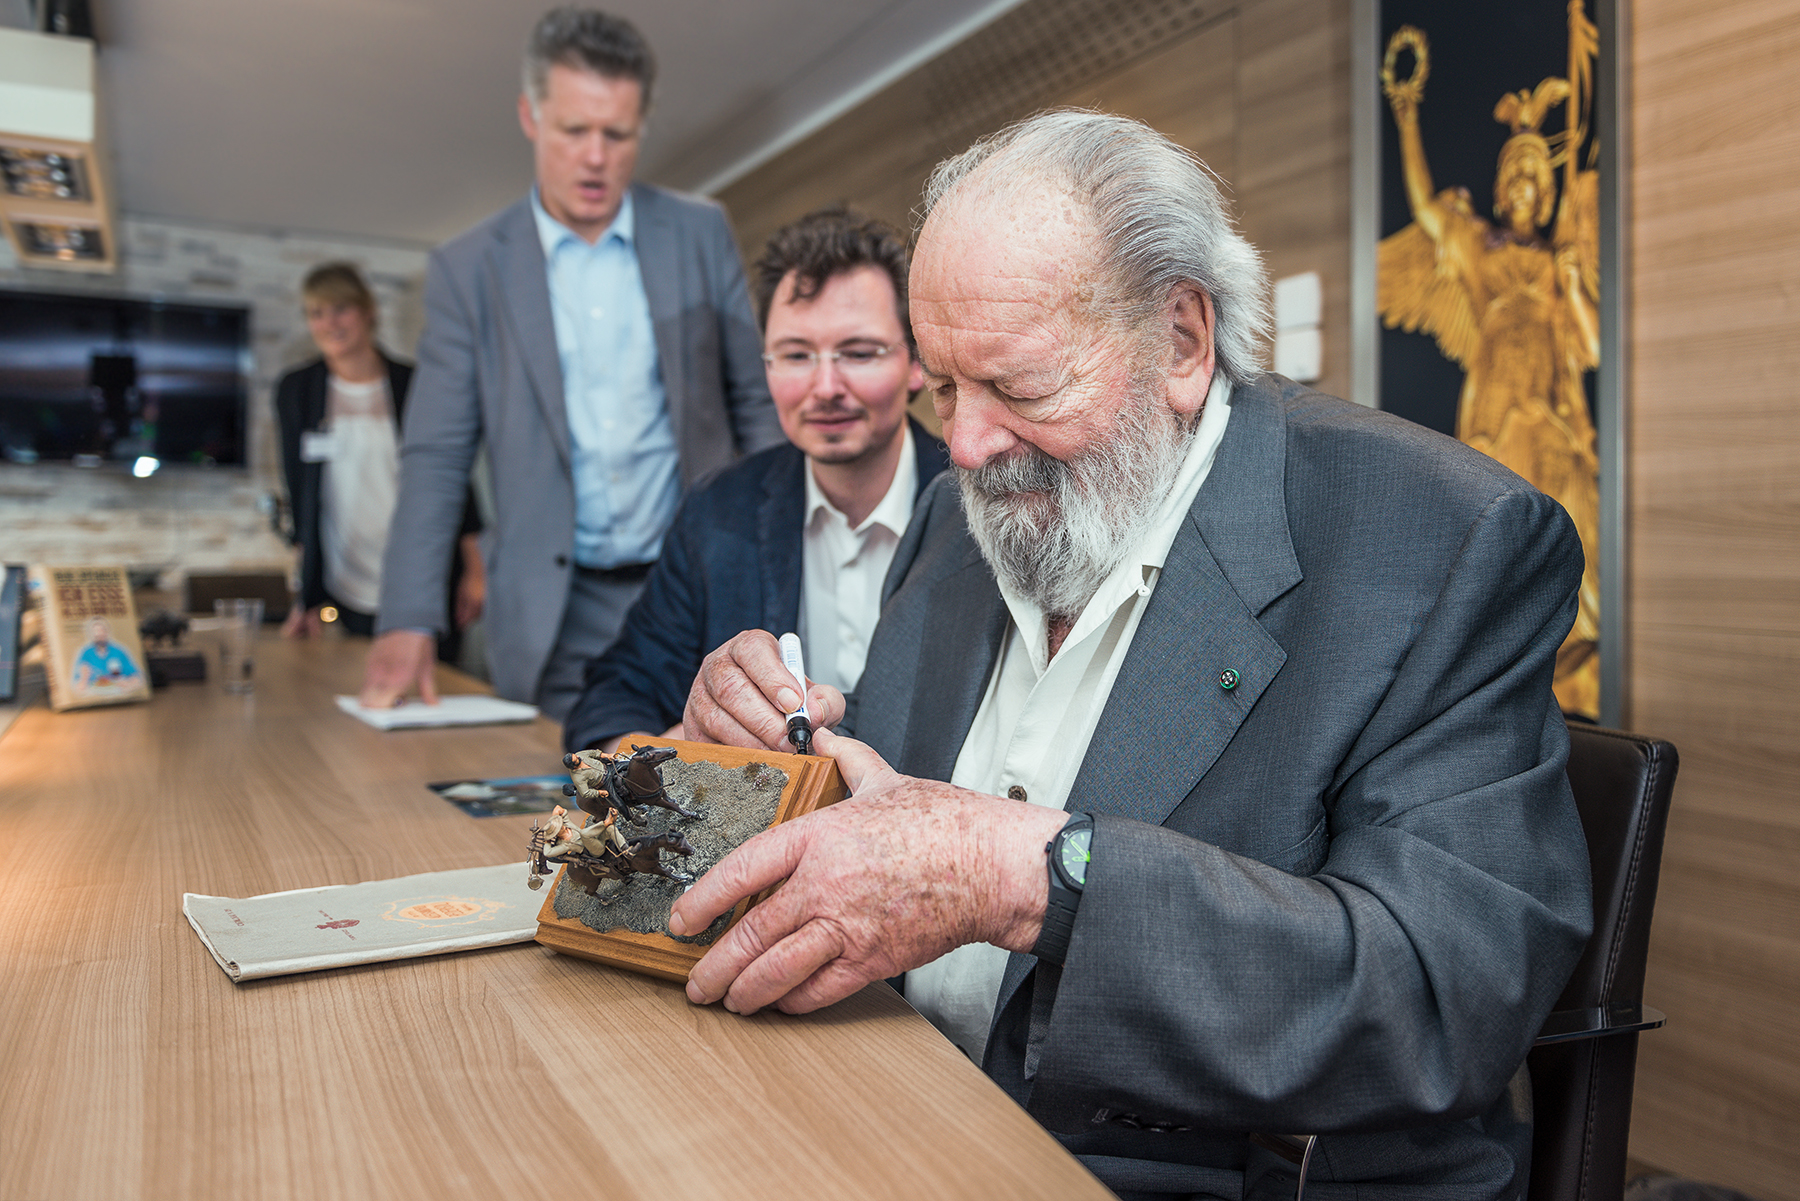 Bud_Spencer_MichelBuchmann05